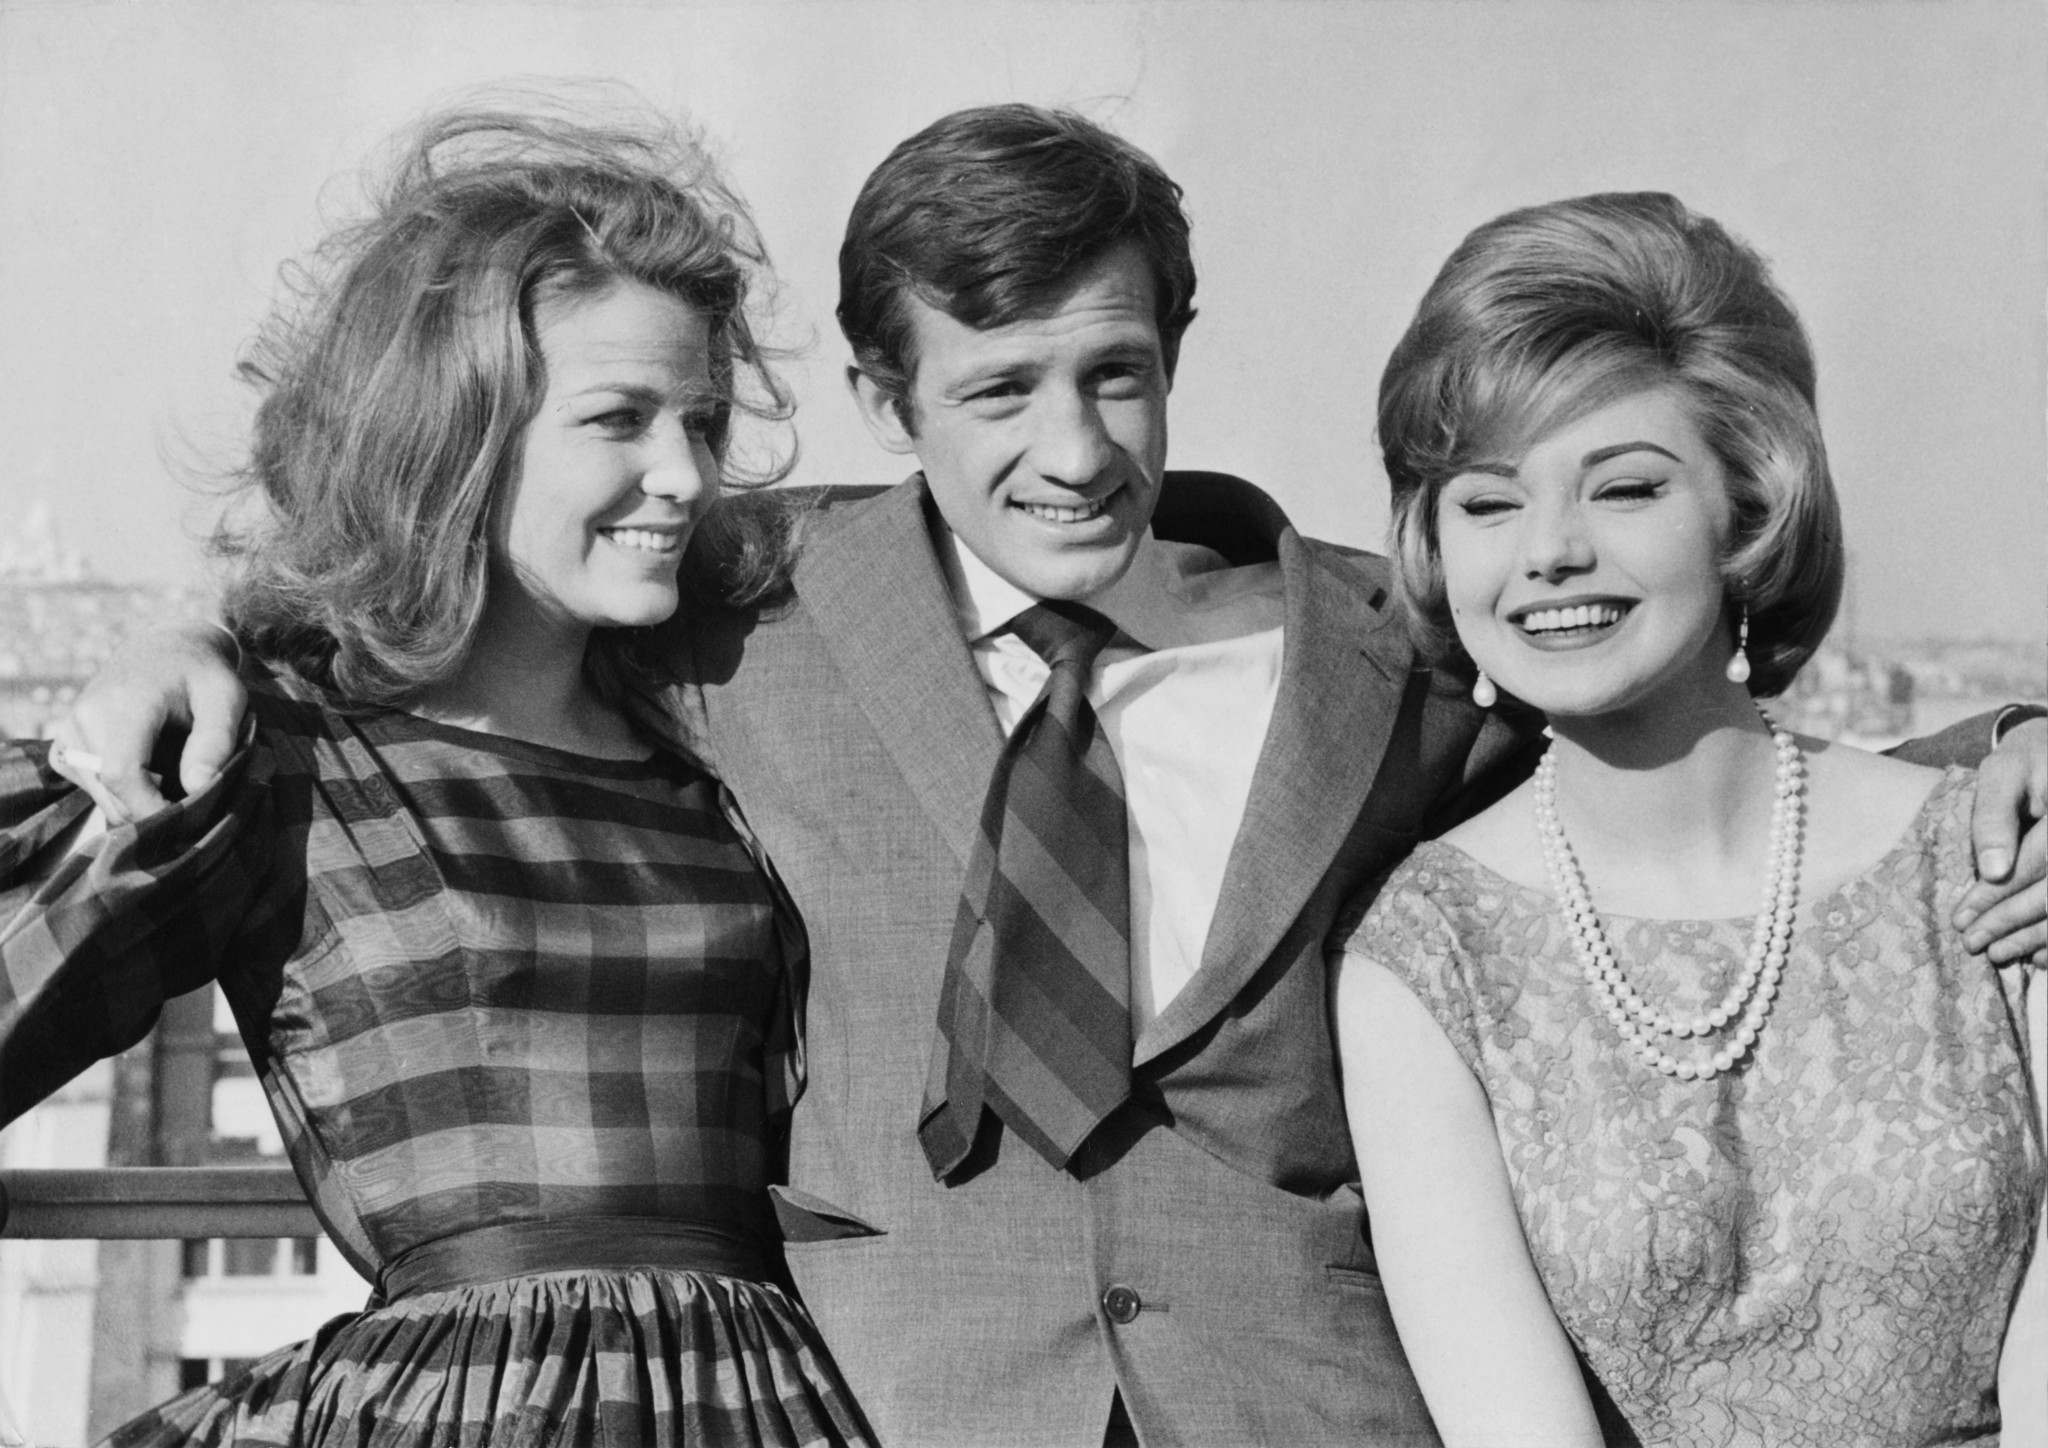 Legendary French actor Jean-Paul Belmondo, centre, has died aged 88 ©Getty Images